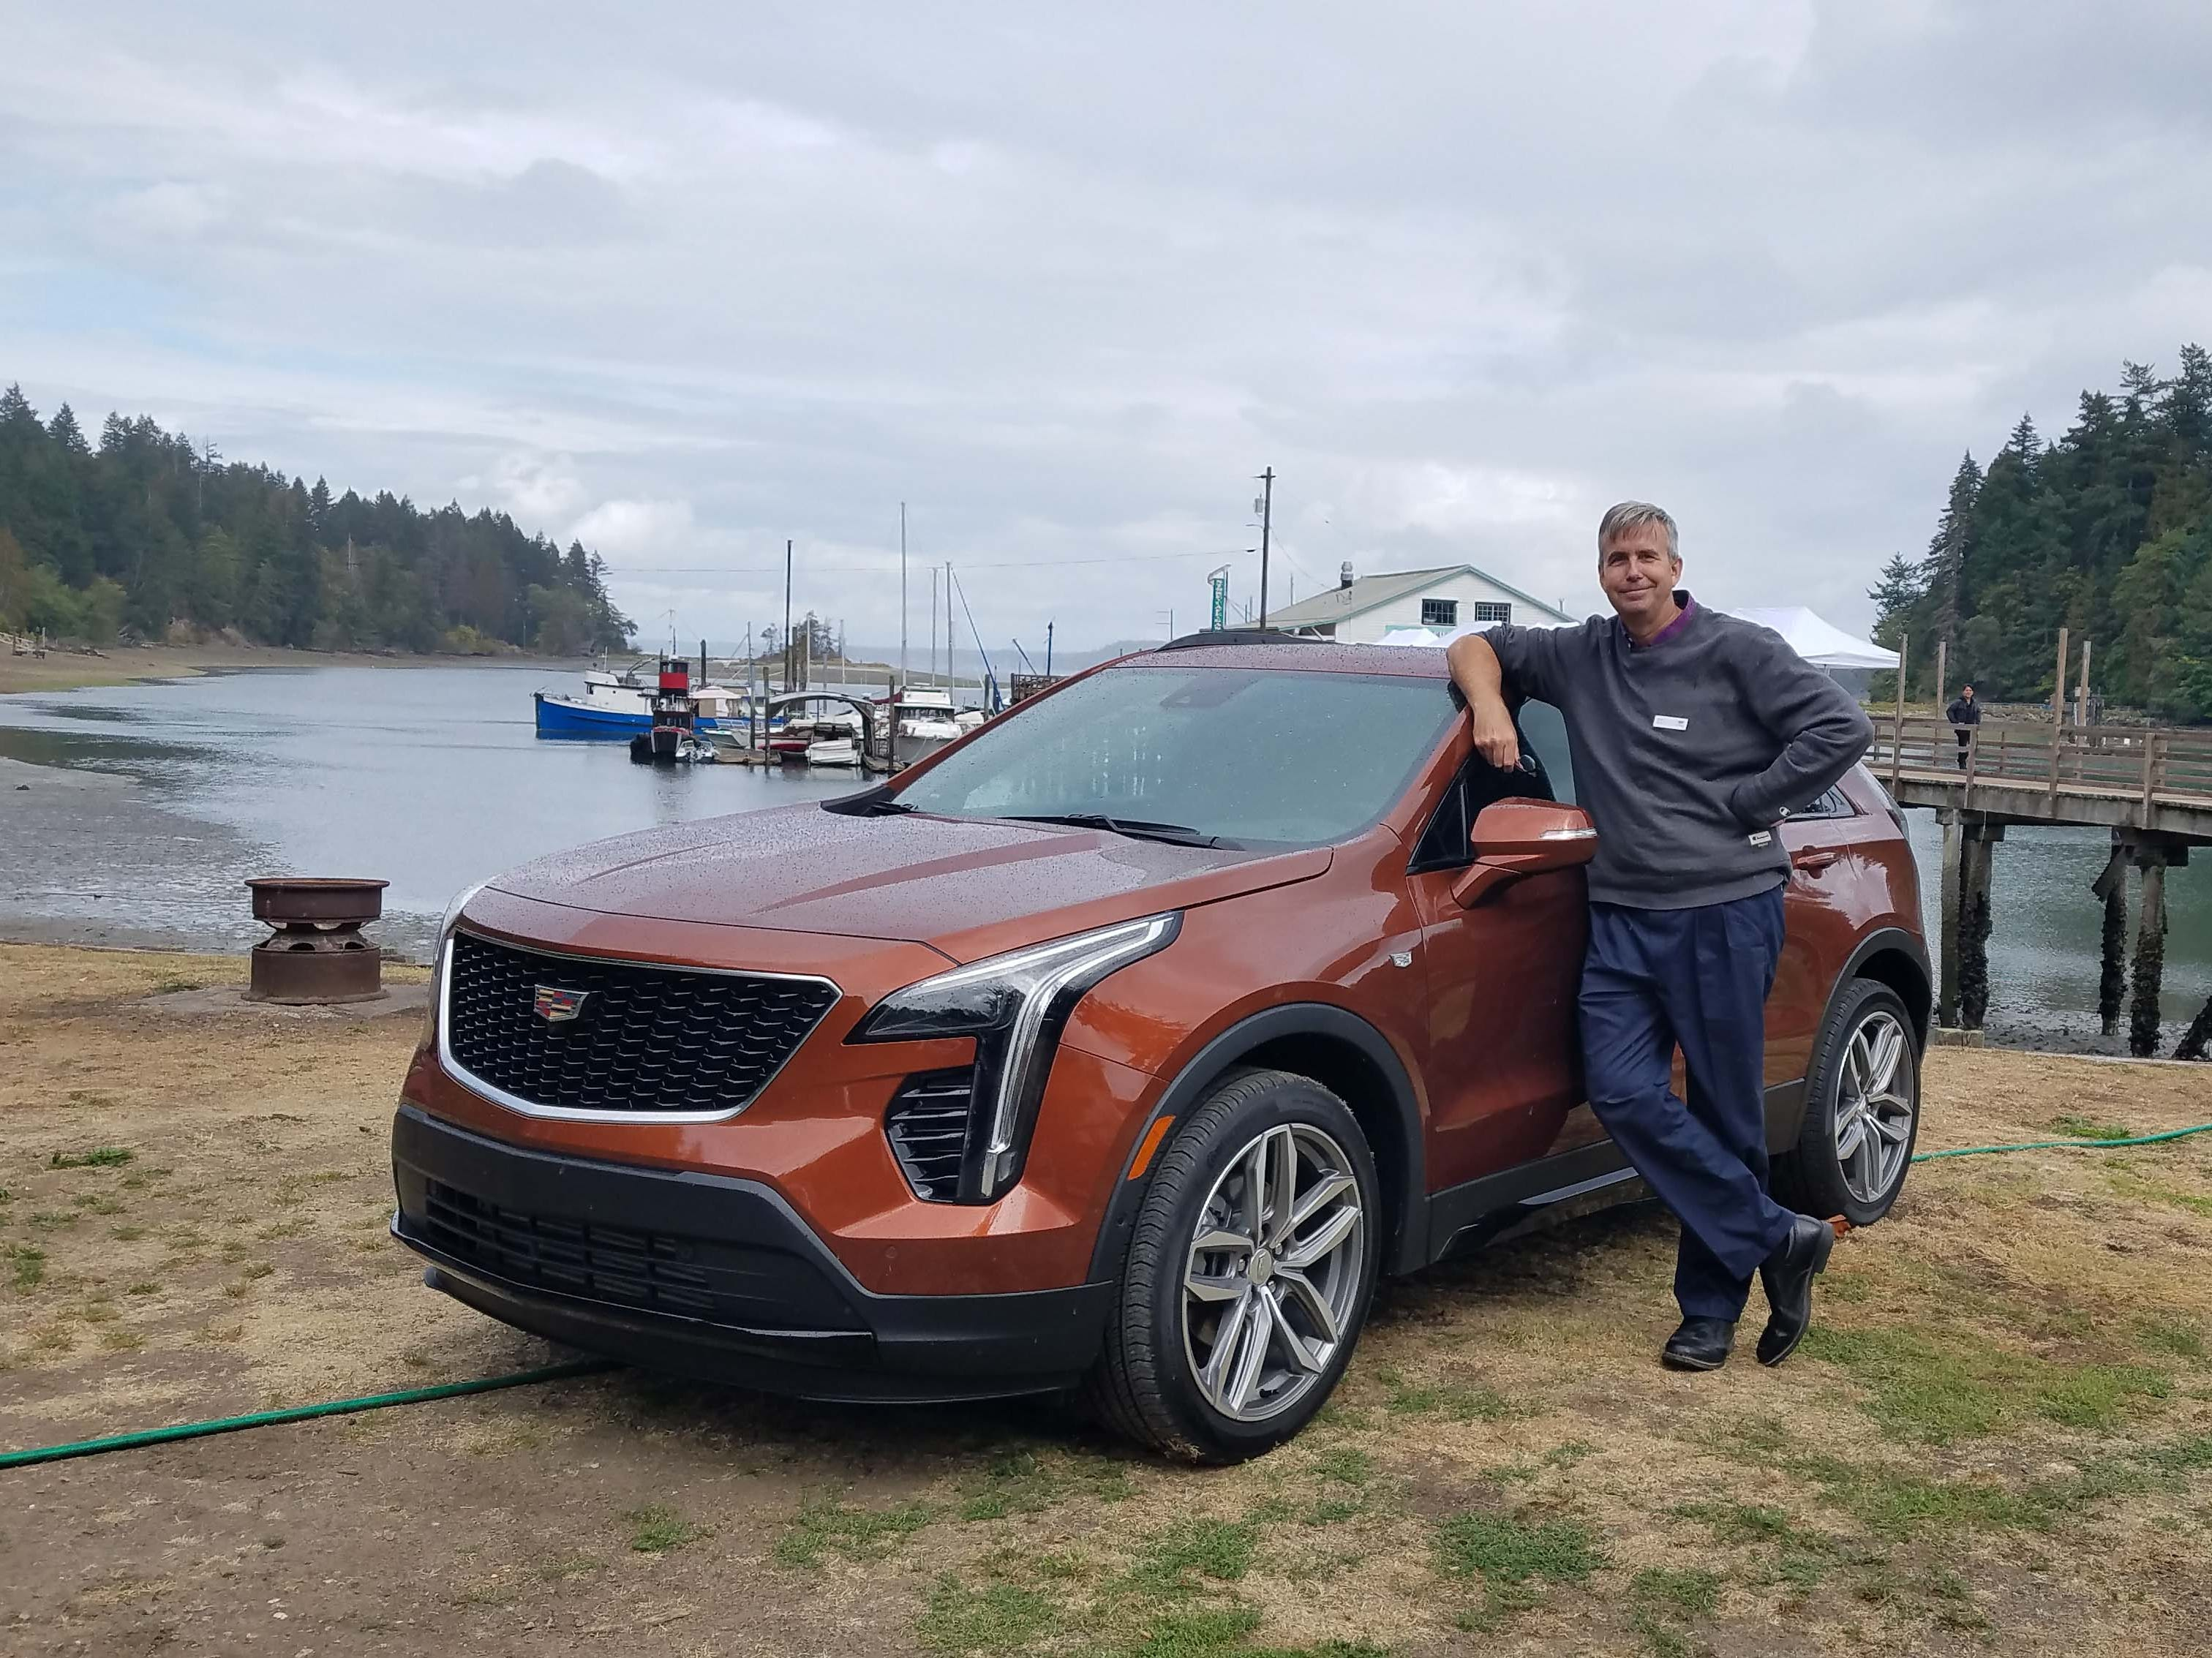 Detroit News auto critic Henry Payne flogged the 2019 Cadillac XT4 across metro Seattle and found it one of the most satisfying entries in the fast-growing subcompact ute segment. With interior room that pushes into the compact ute space, the XT4 is also fun to drive.